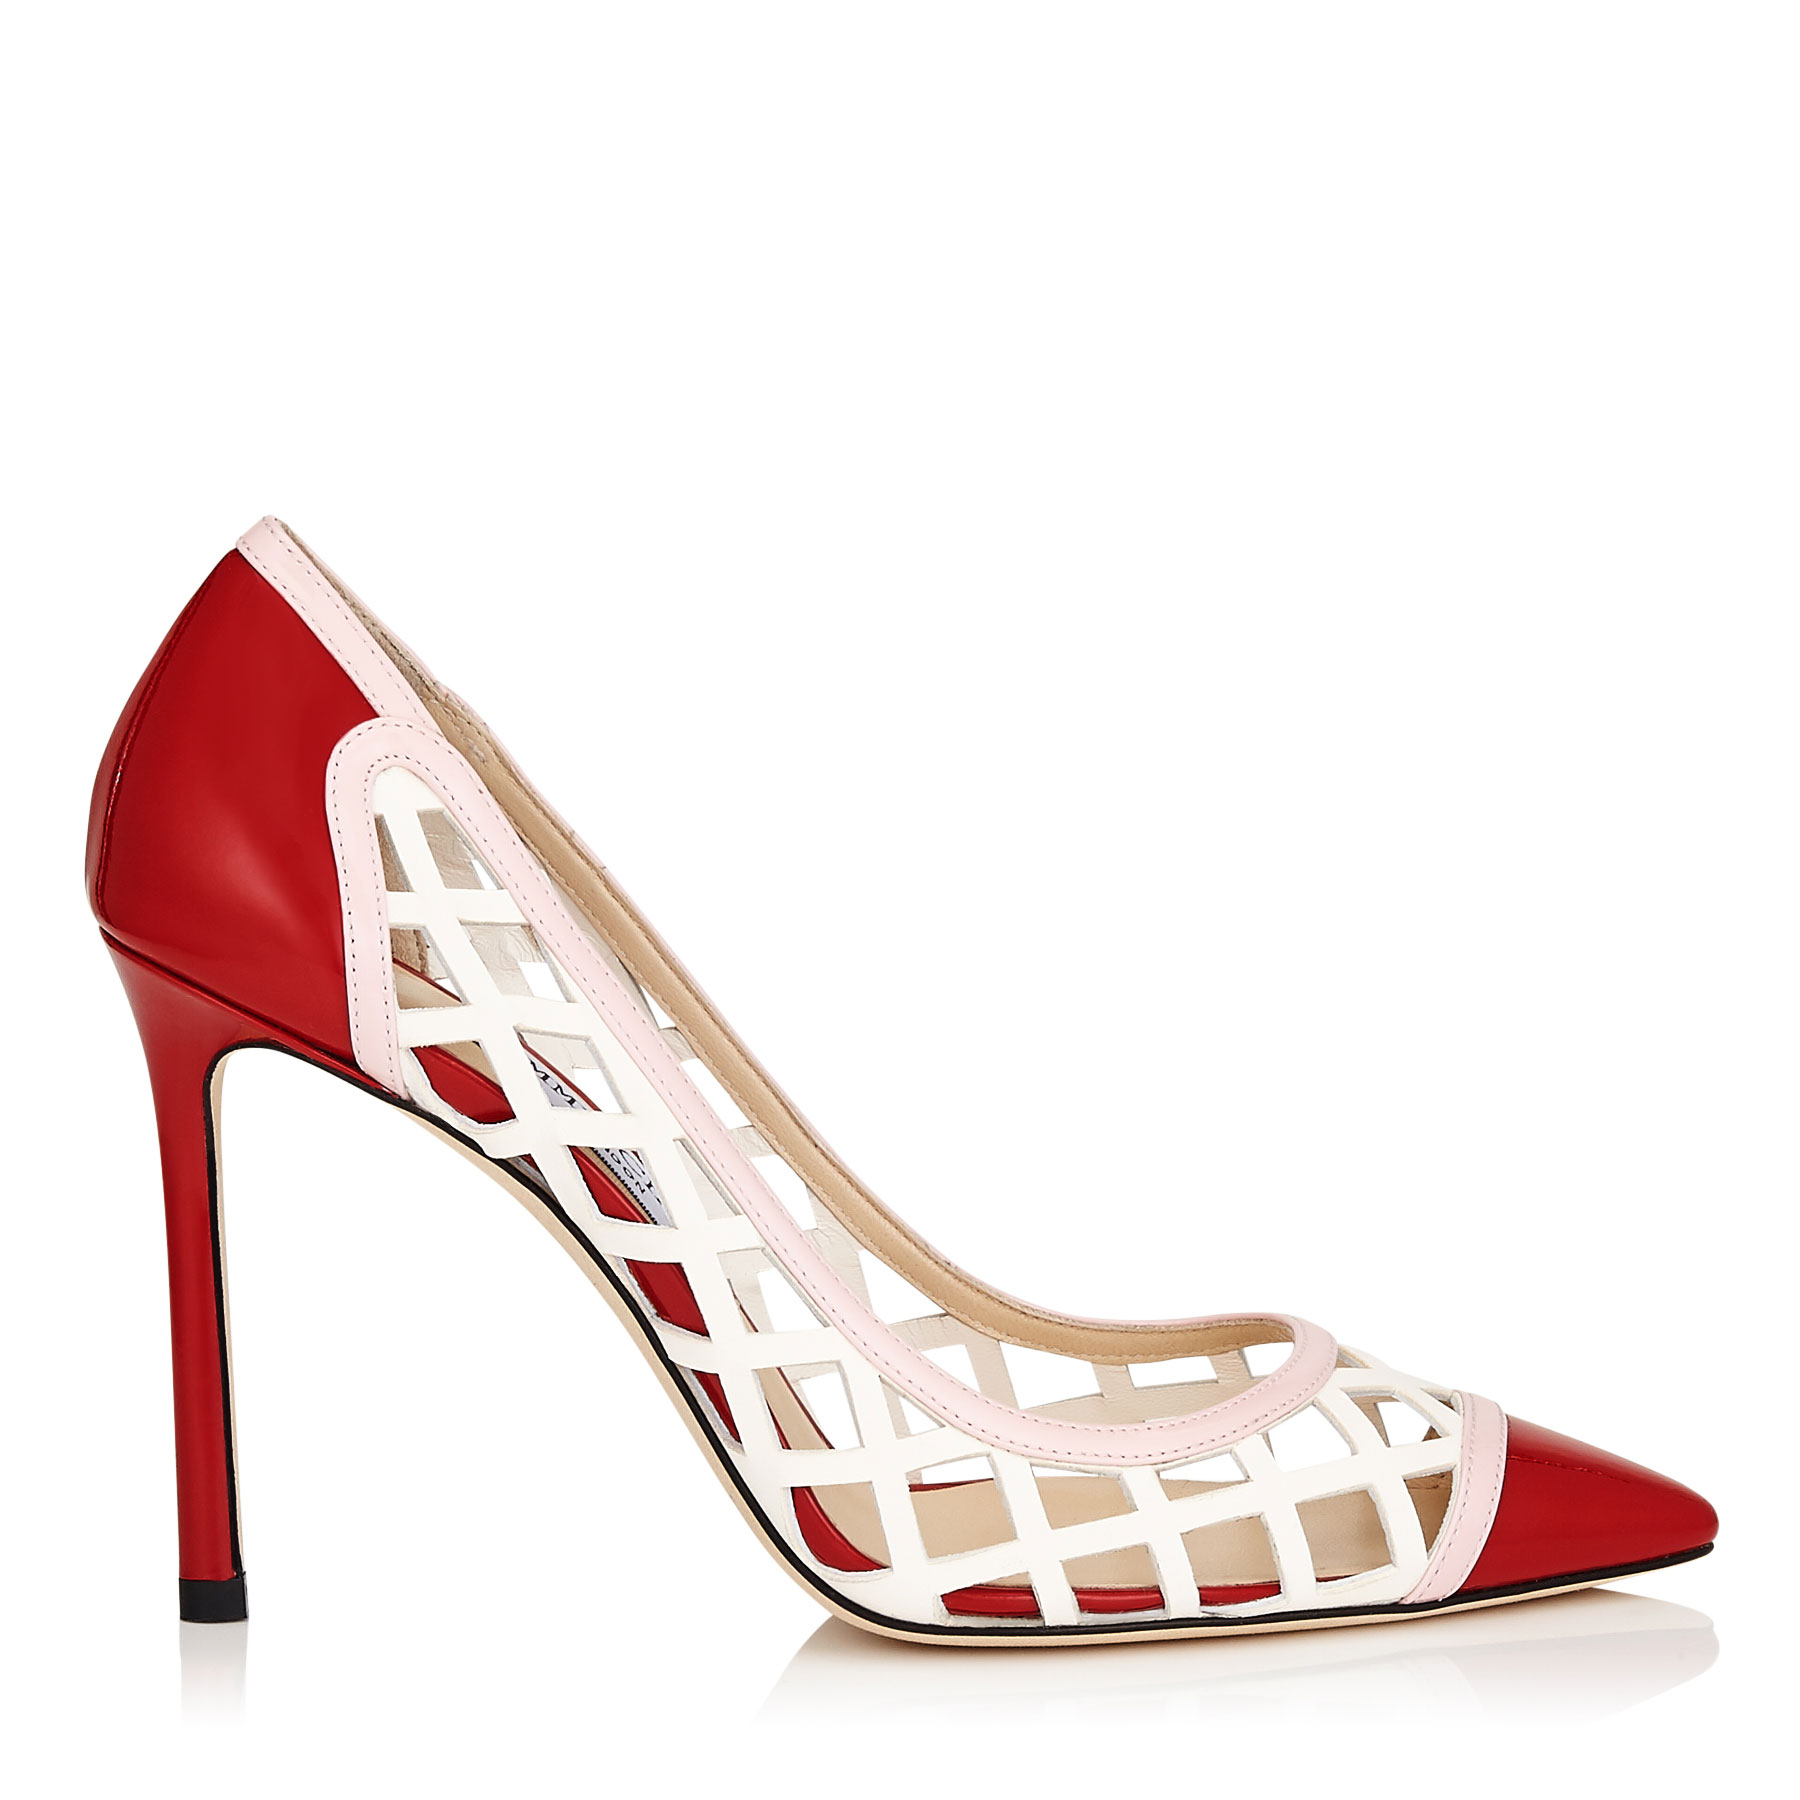 Photo of ROMY 100 Rosewater Diamond Perforated and Patent Mix Pointy Toe Pumps by Jimmy Choo womens shoes - buy Jimmy Choo footwear online